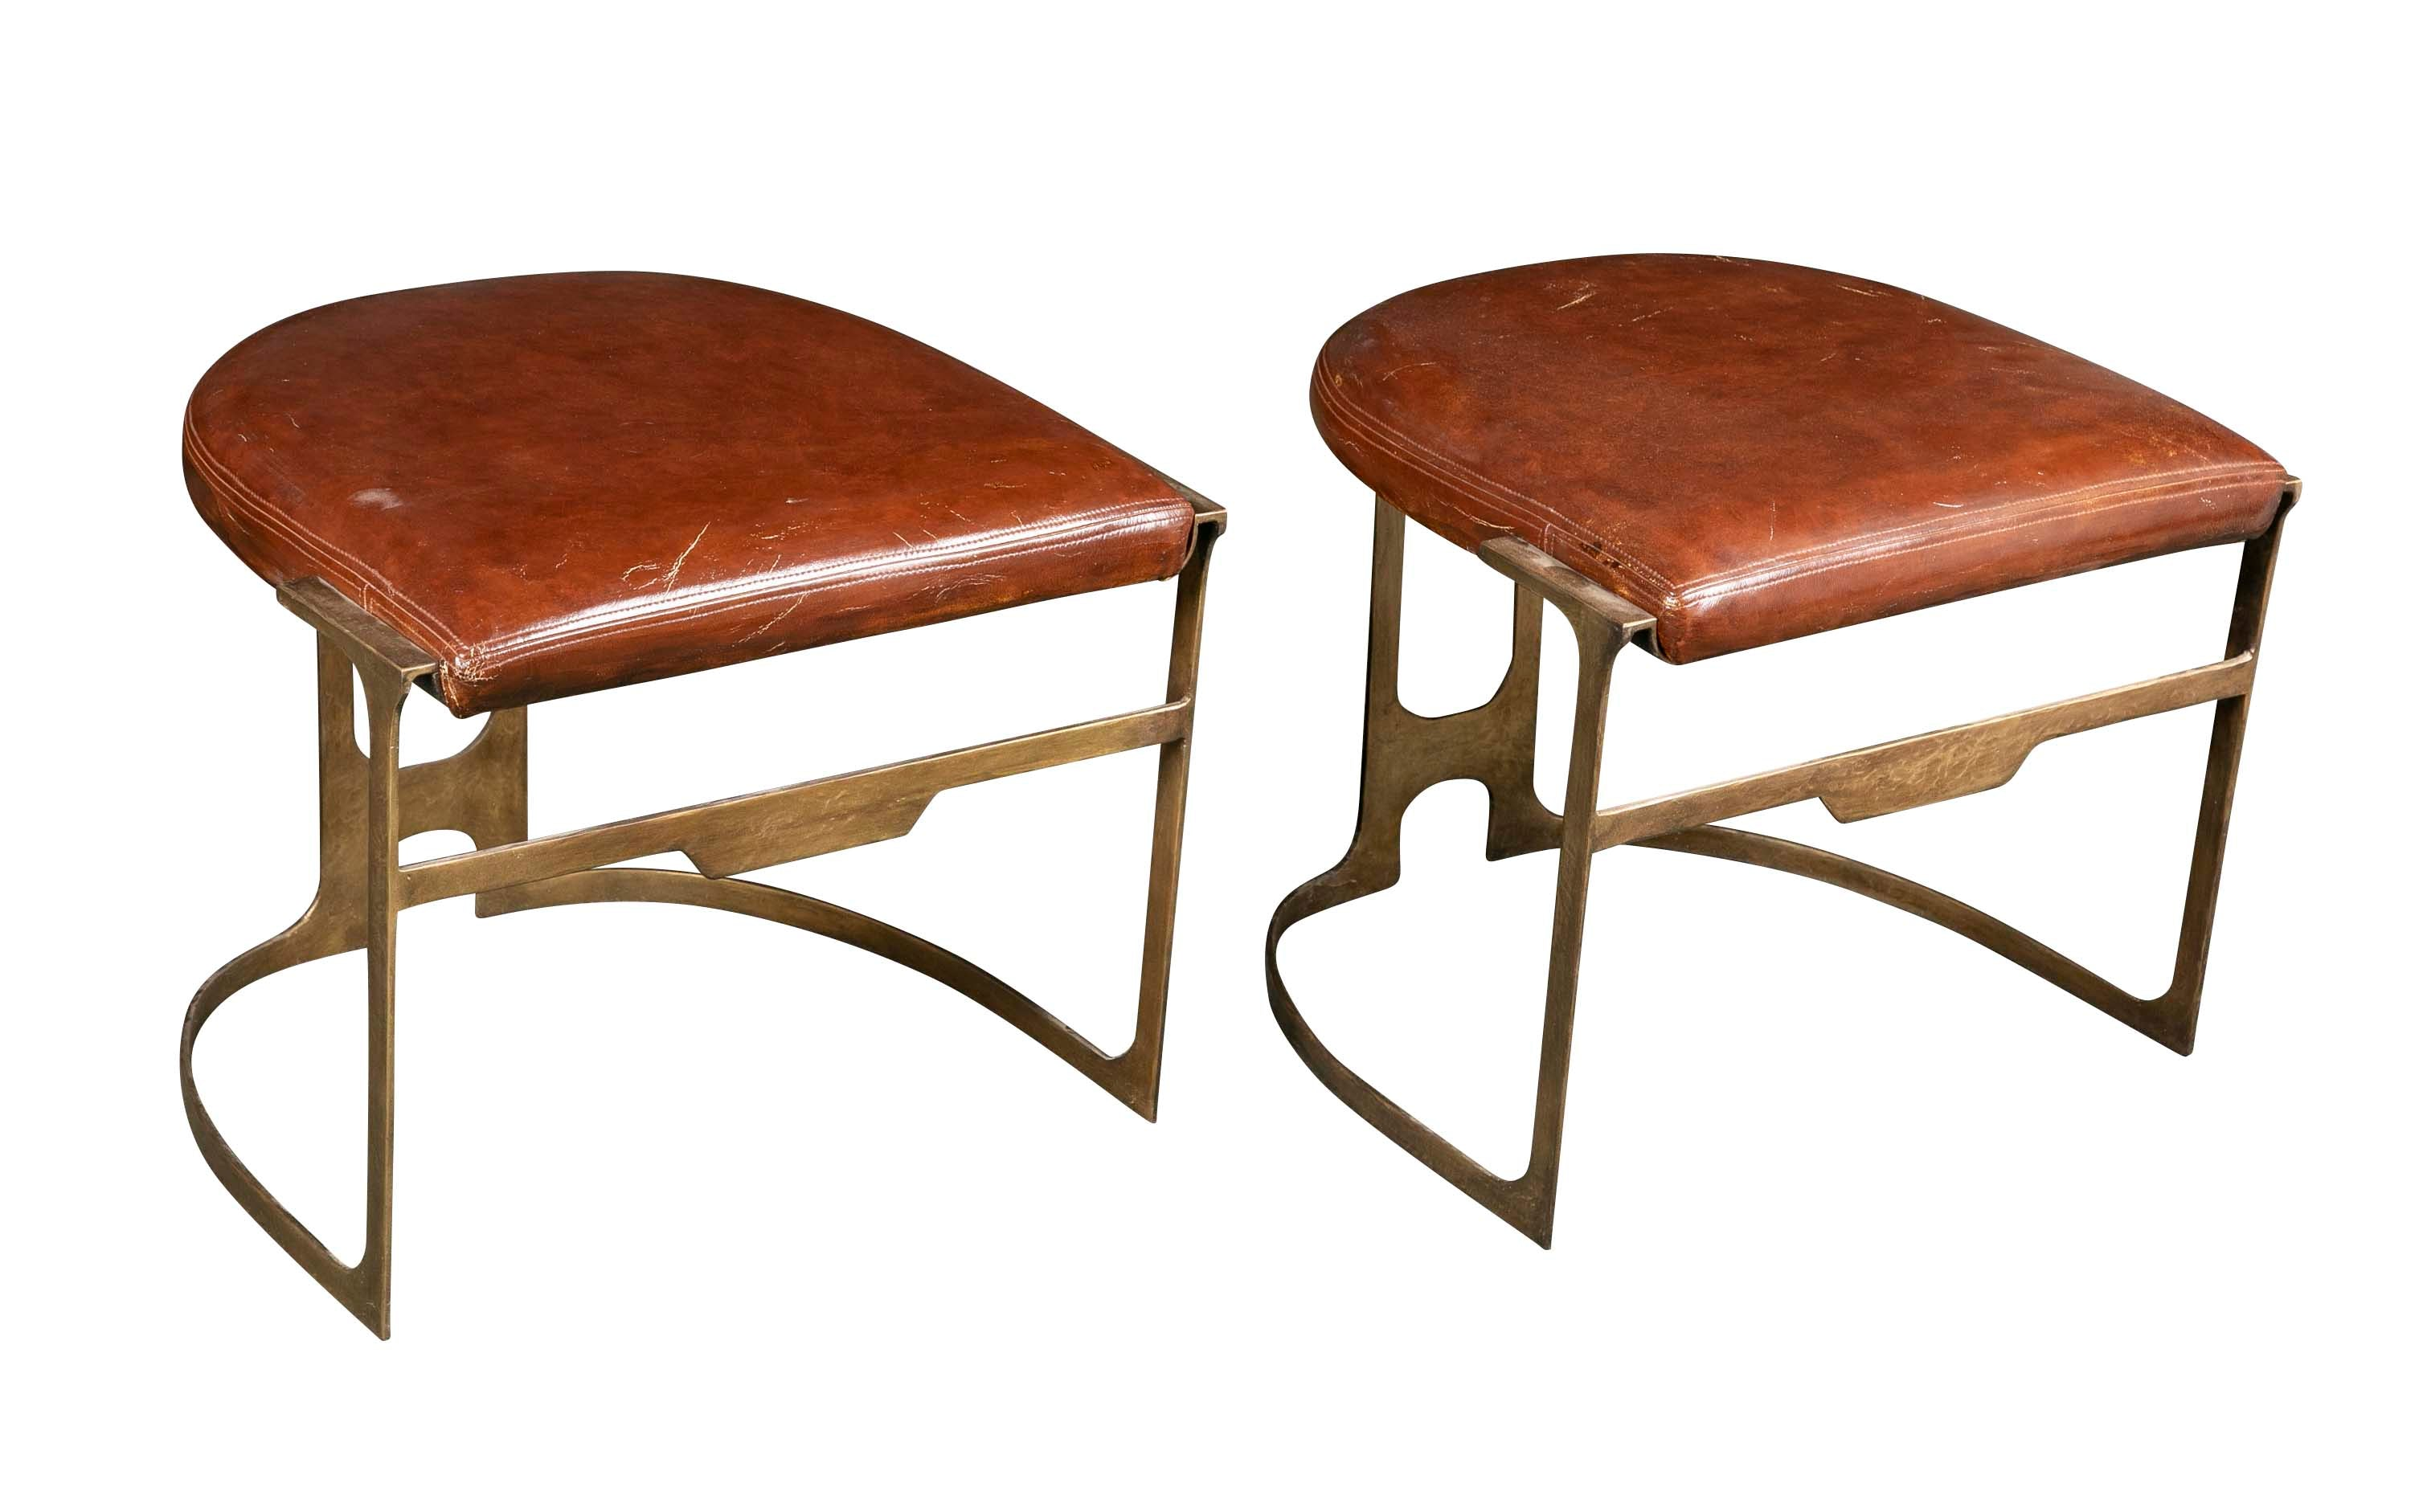 Pair of Contemporary Leather & Patinated Bronze Stools